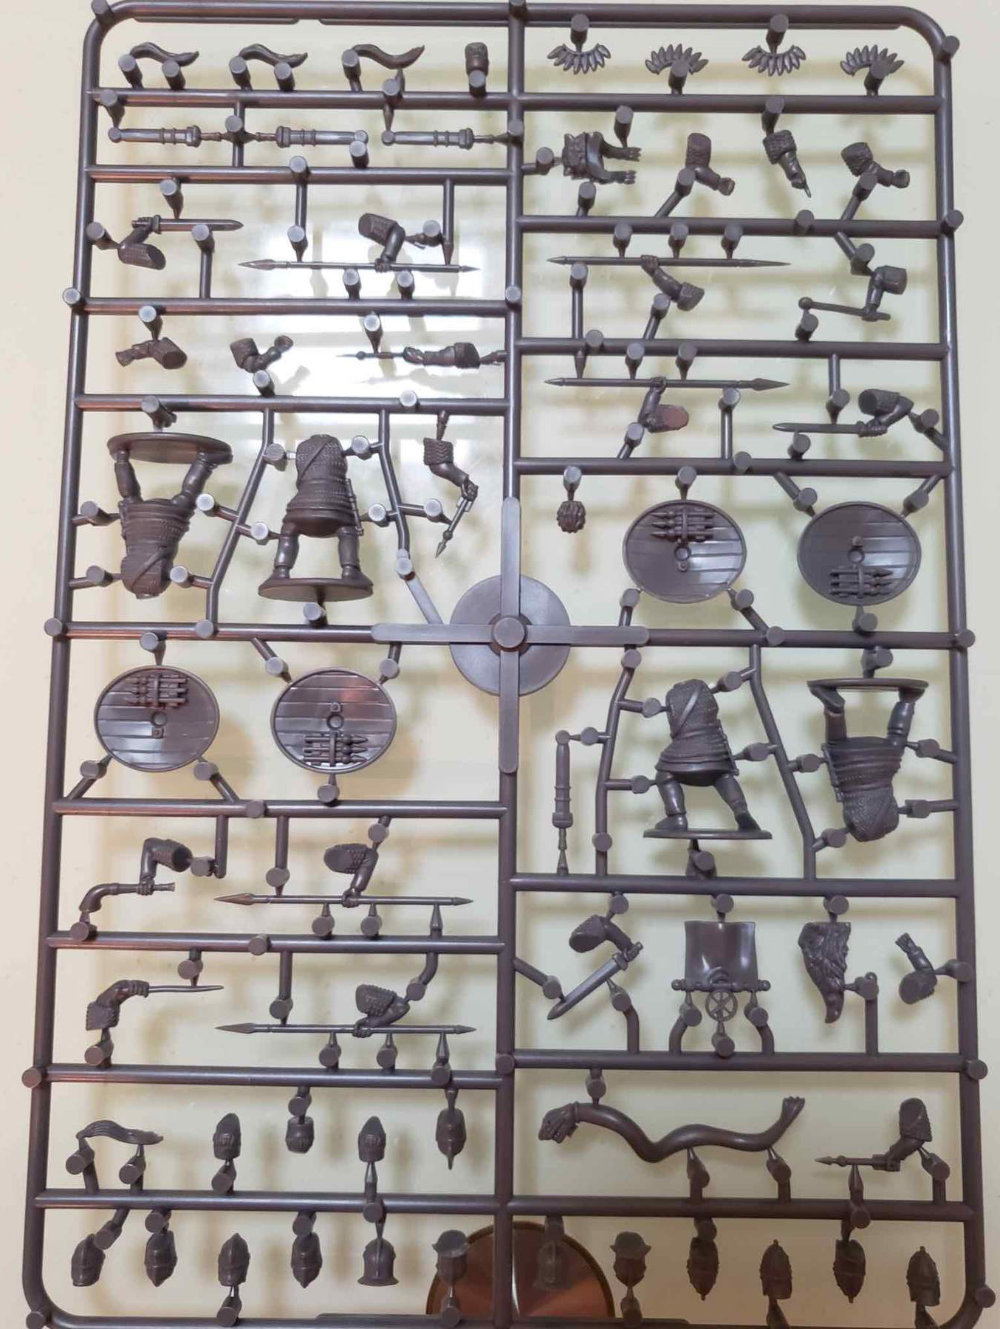 Back of the Sprue